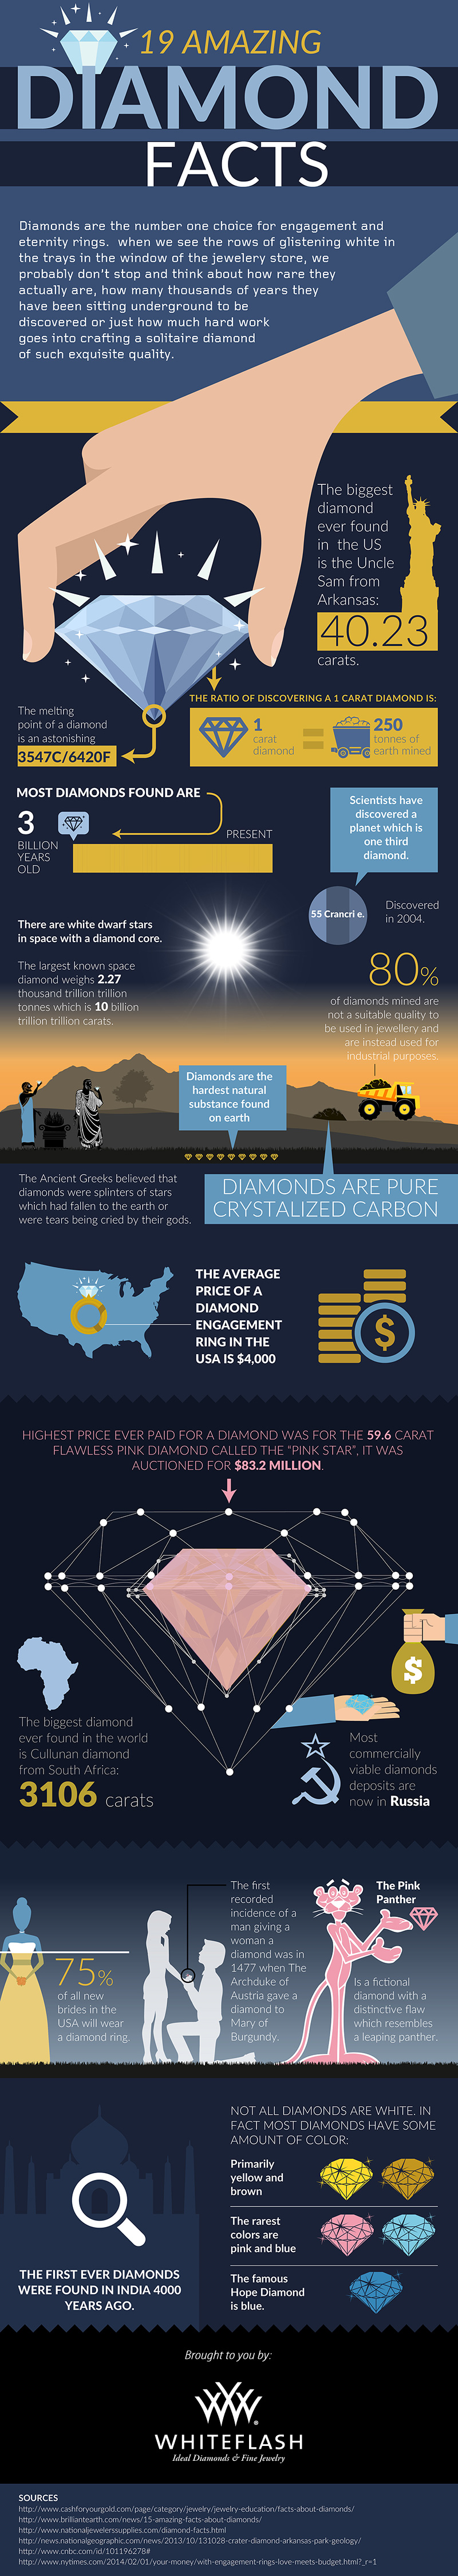 Amazing Diamond Facts Infographic